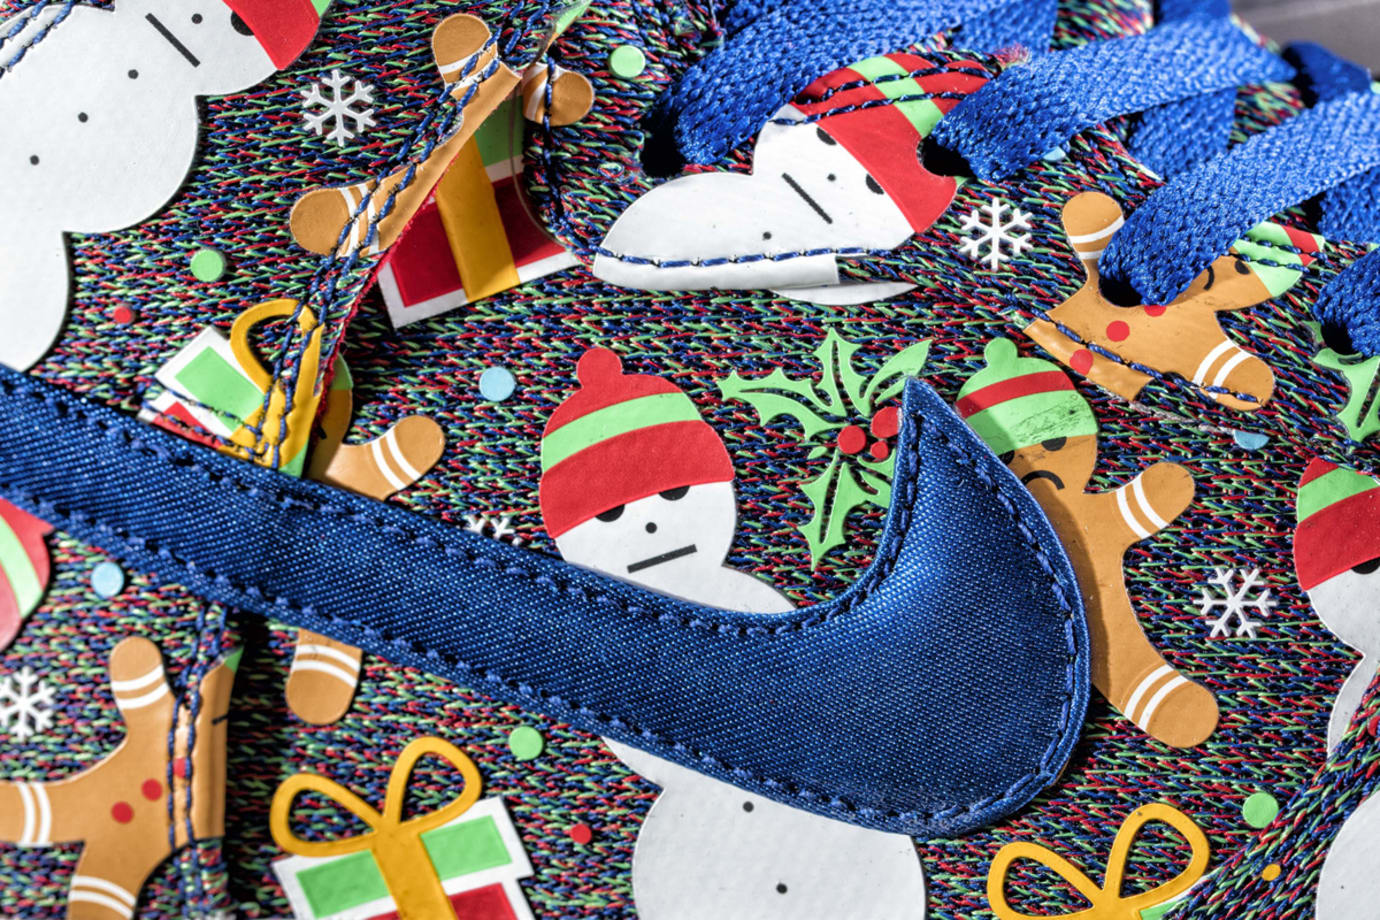 promo code 1b670 2d999 Image via Concepts Nike SB Ugly Christmas Sweater Dunks 2017 Concepts 2